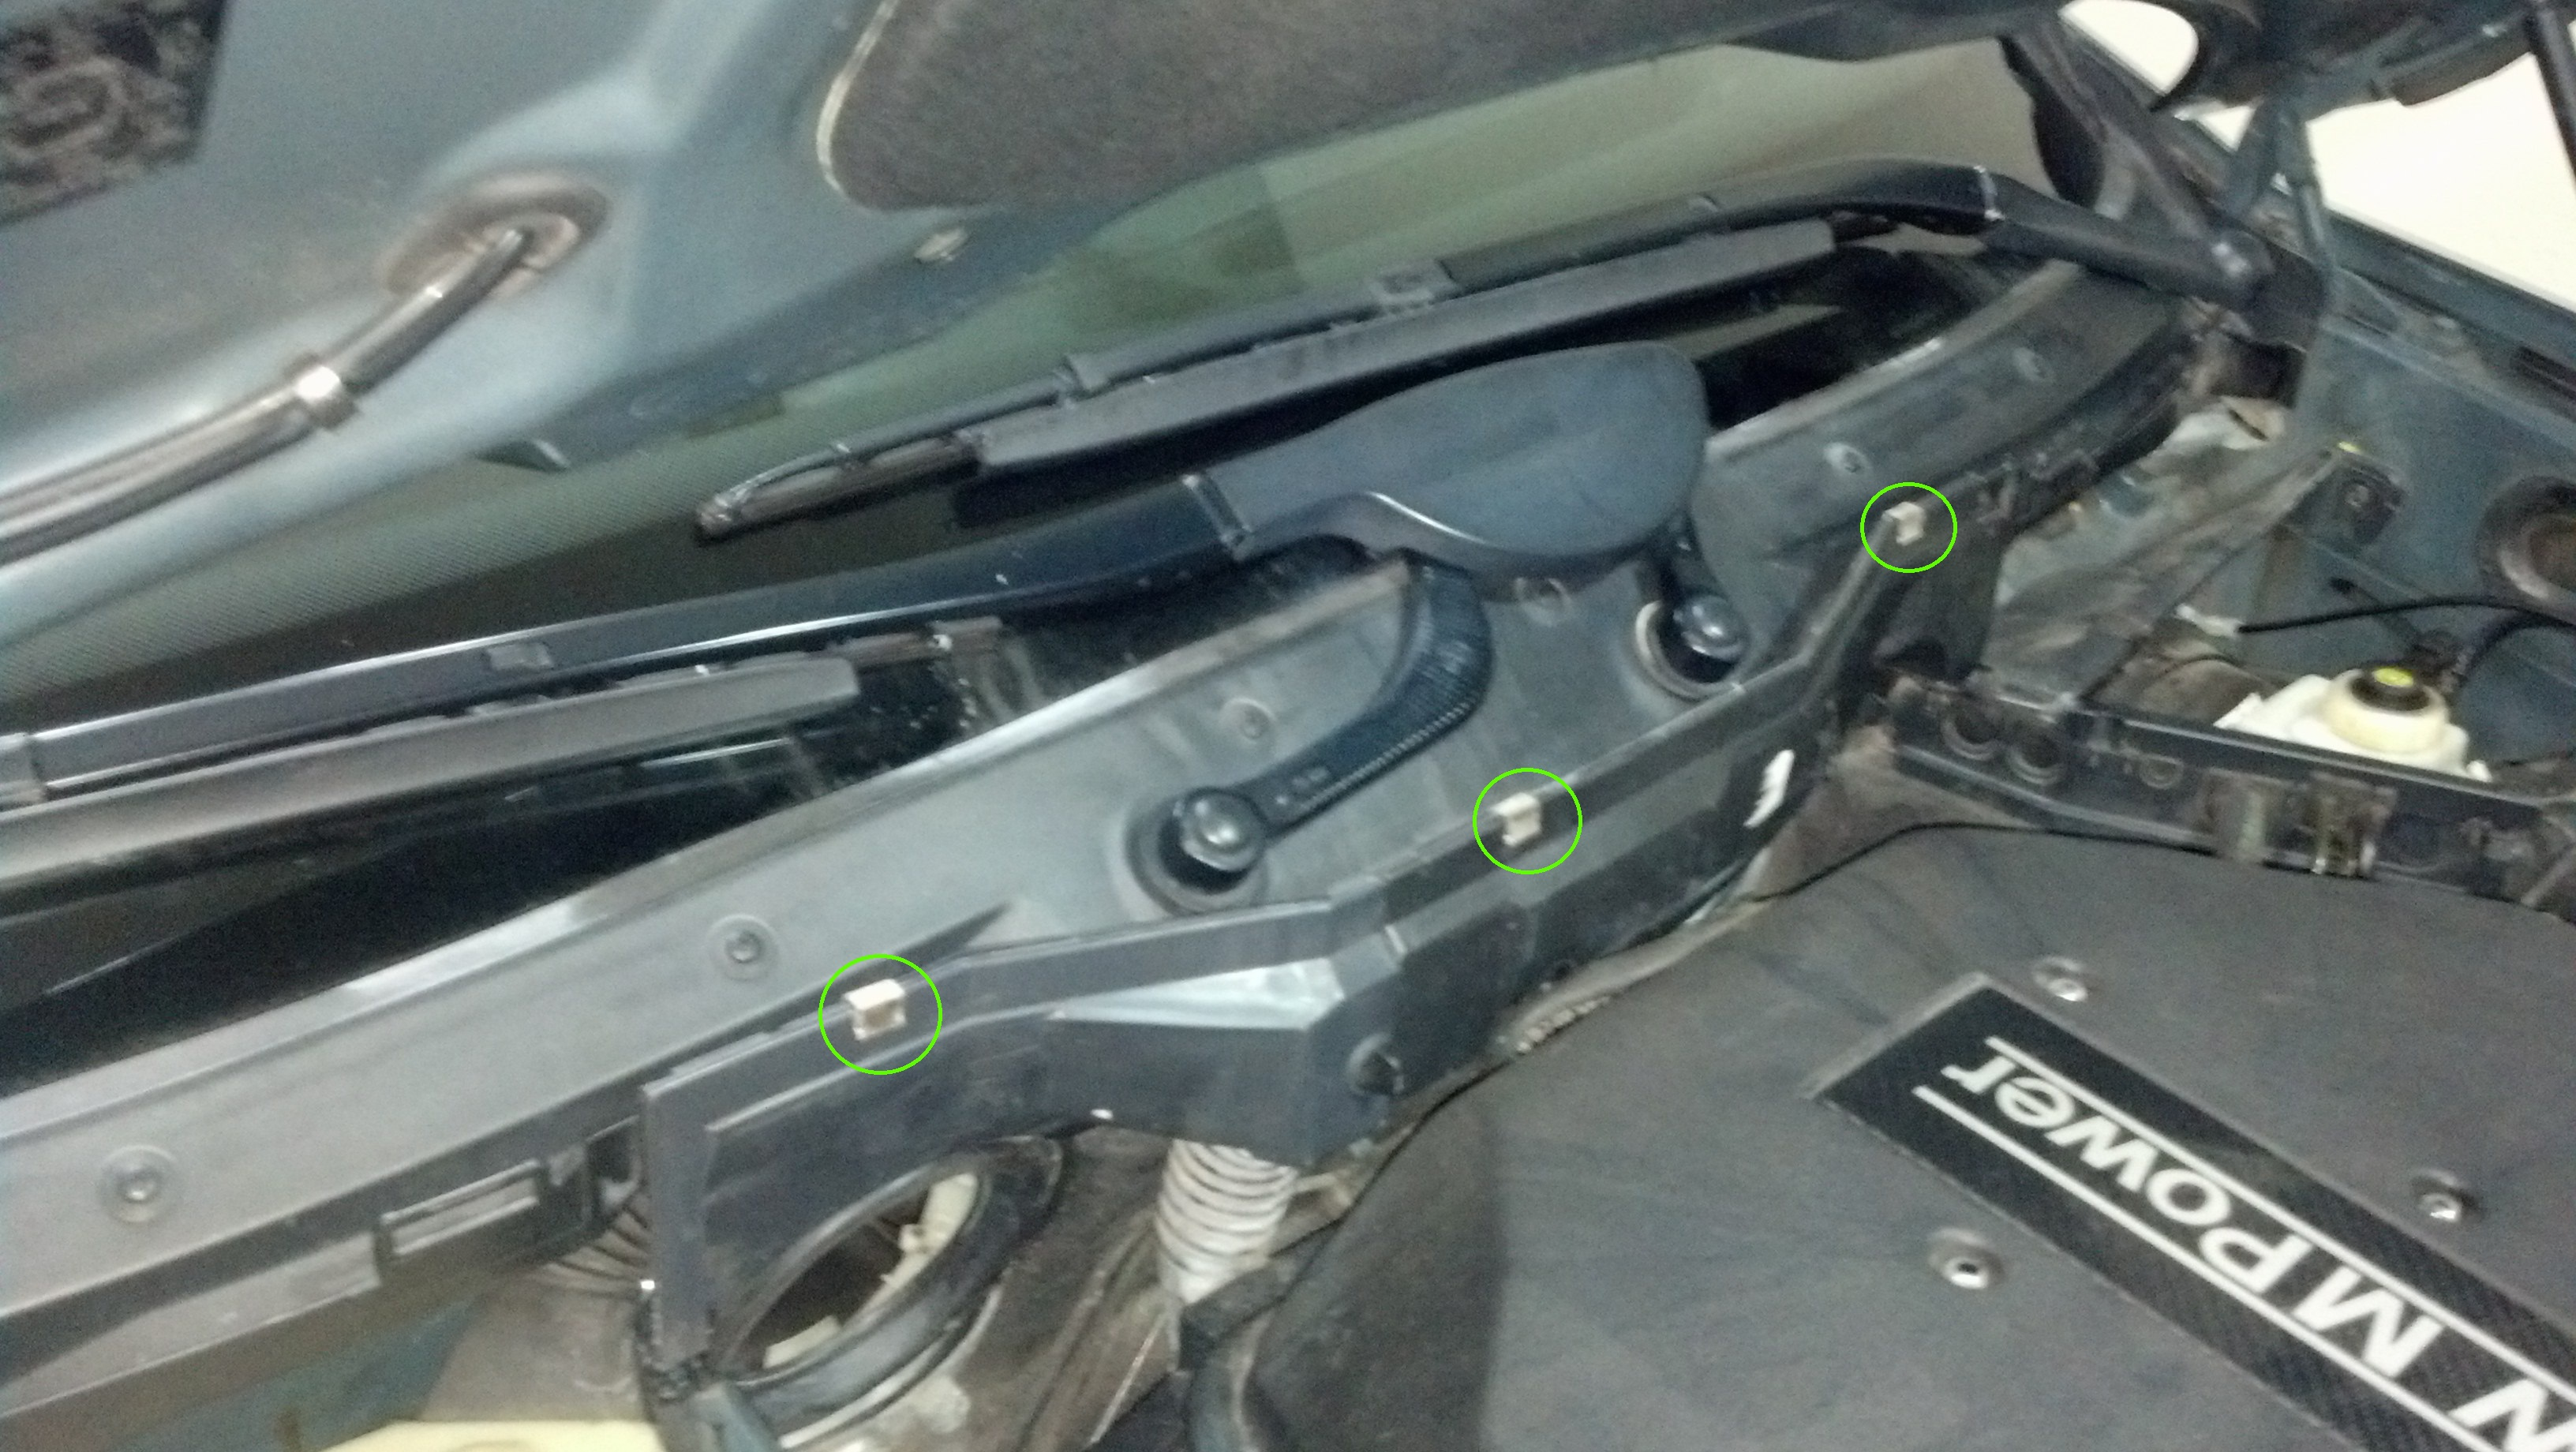 E39 - Replacement of the Left and Right Firewall Covers-img_20131130_195120_272a.jpg